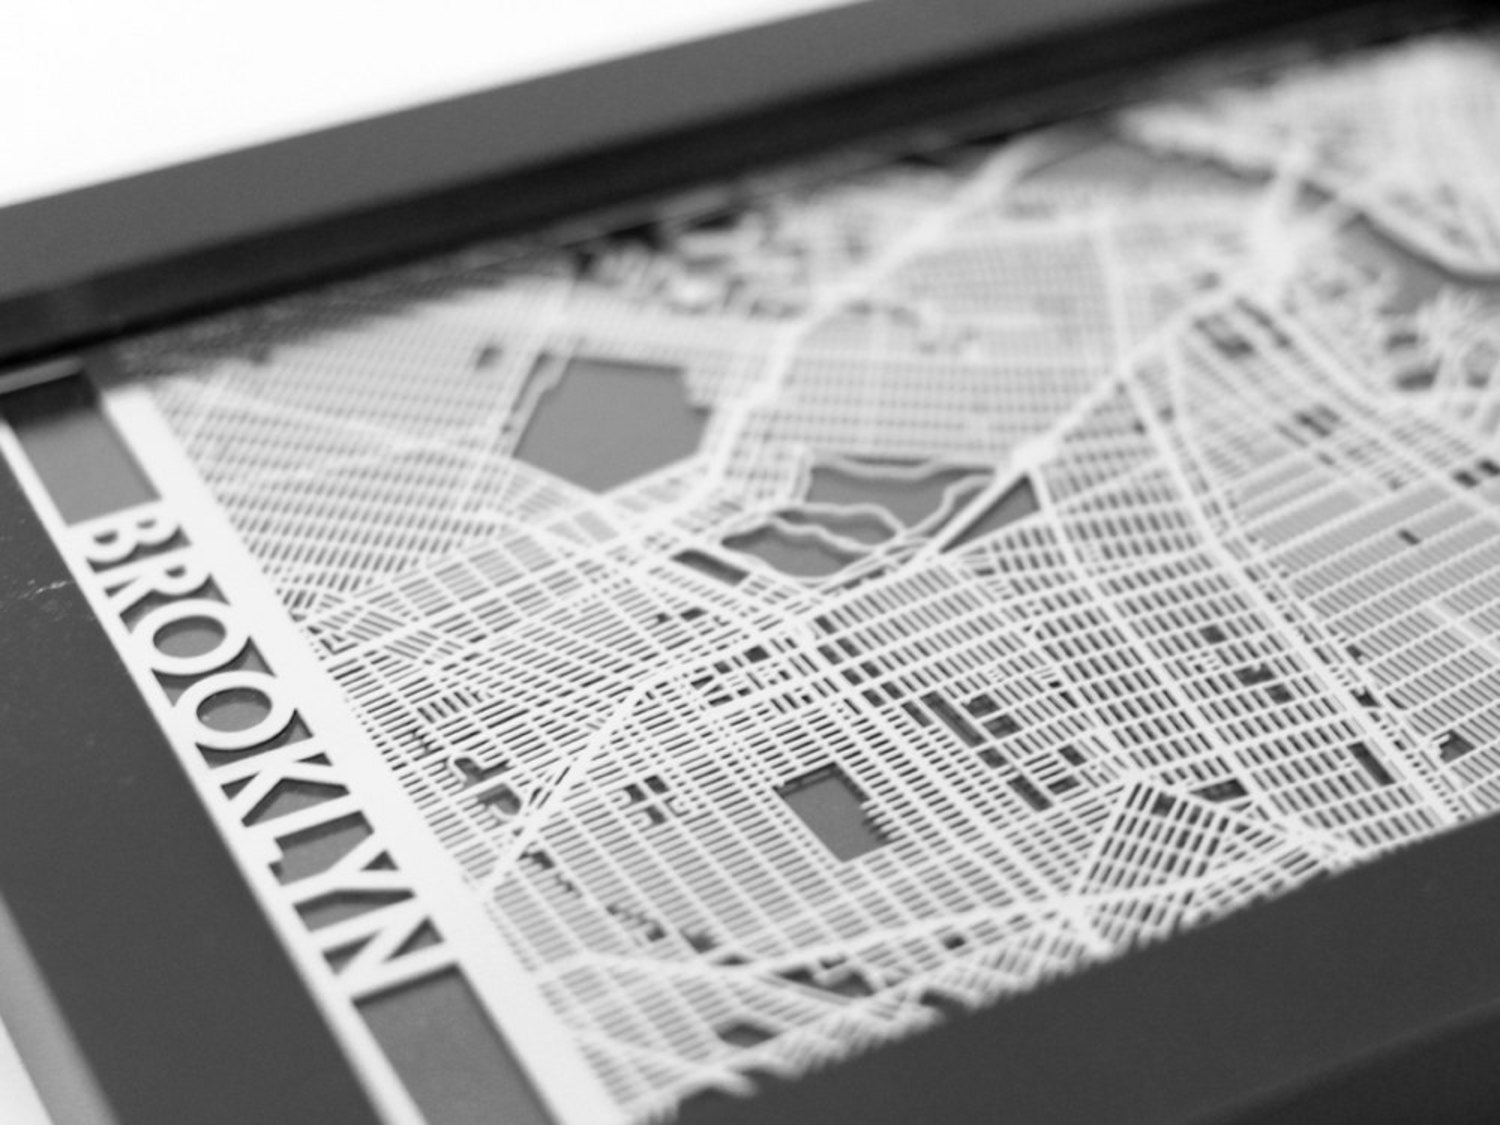 Brooklyn New York Stainless Steel Laser Cut Map - 5x7 Framed